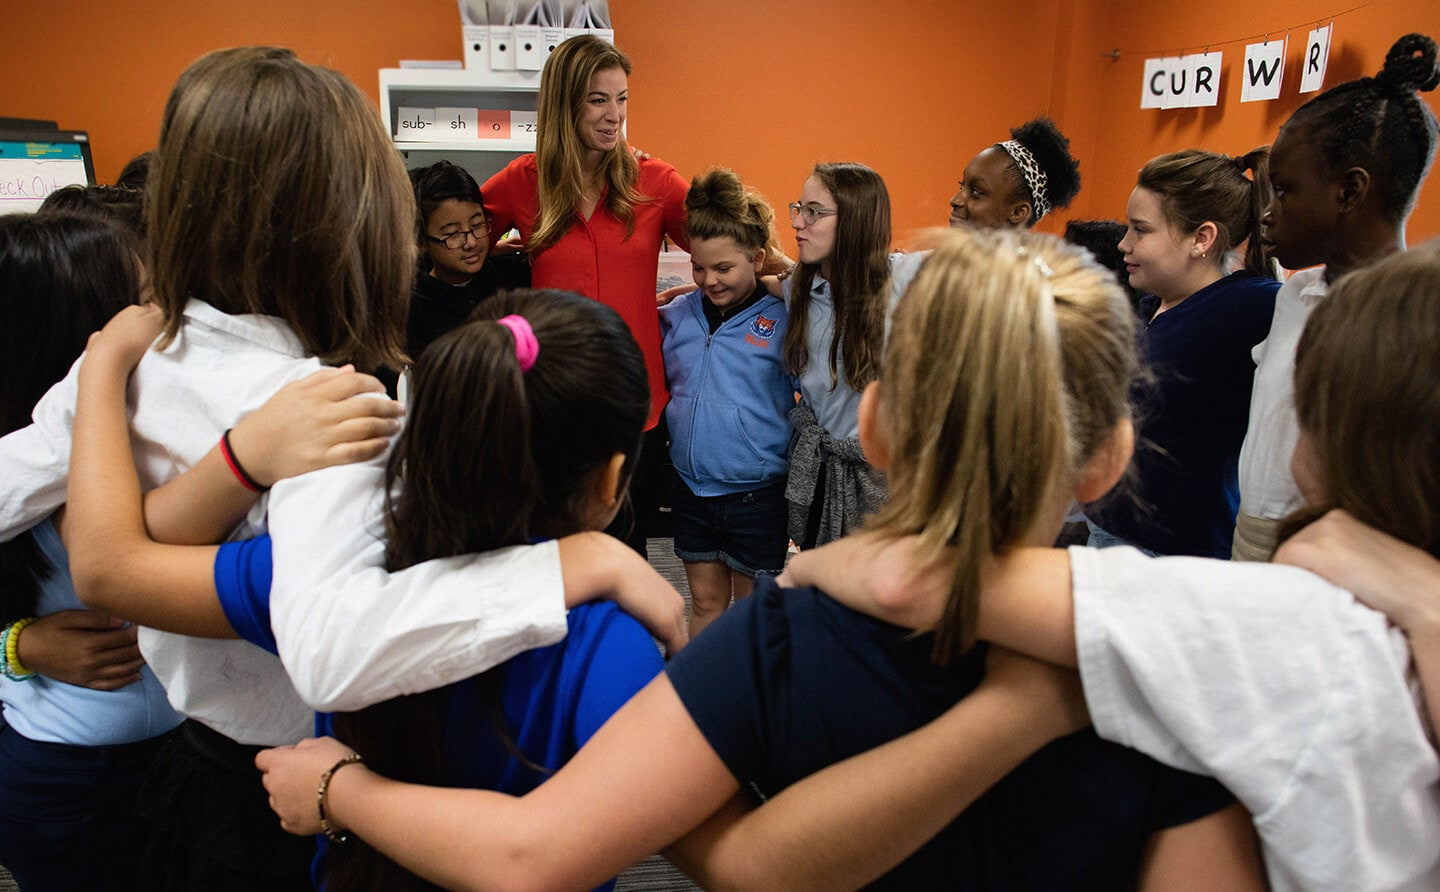 September 19, 2018 | Ms. Tricia Berry's students come together to close out their weekly Circle practice at Valor Flagship Academy in Nashville, TN. Photograph by John Edmonds